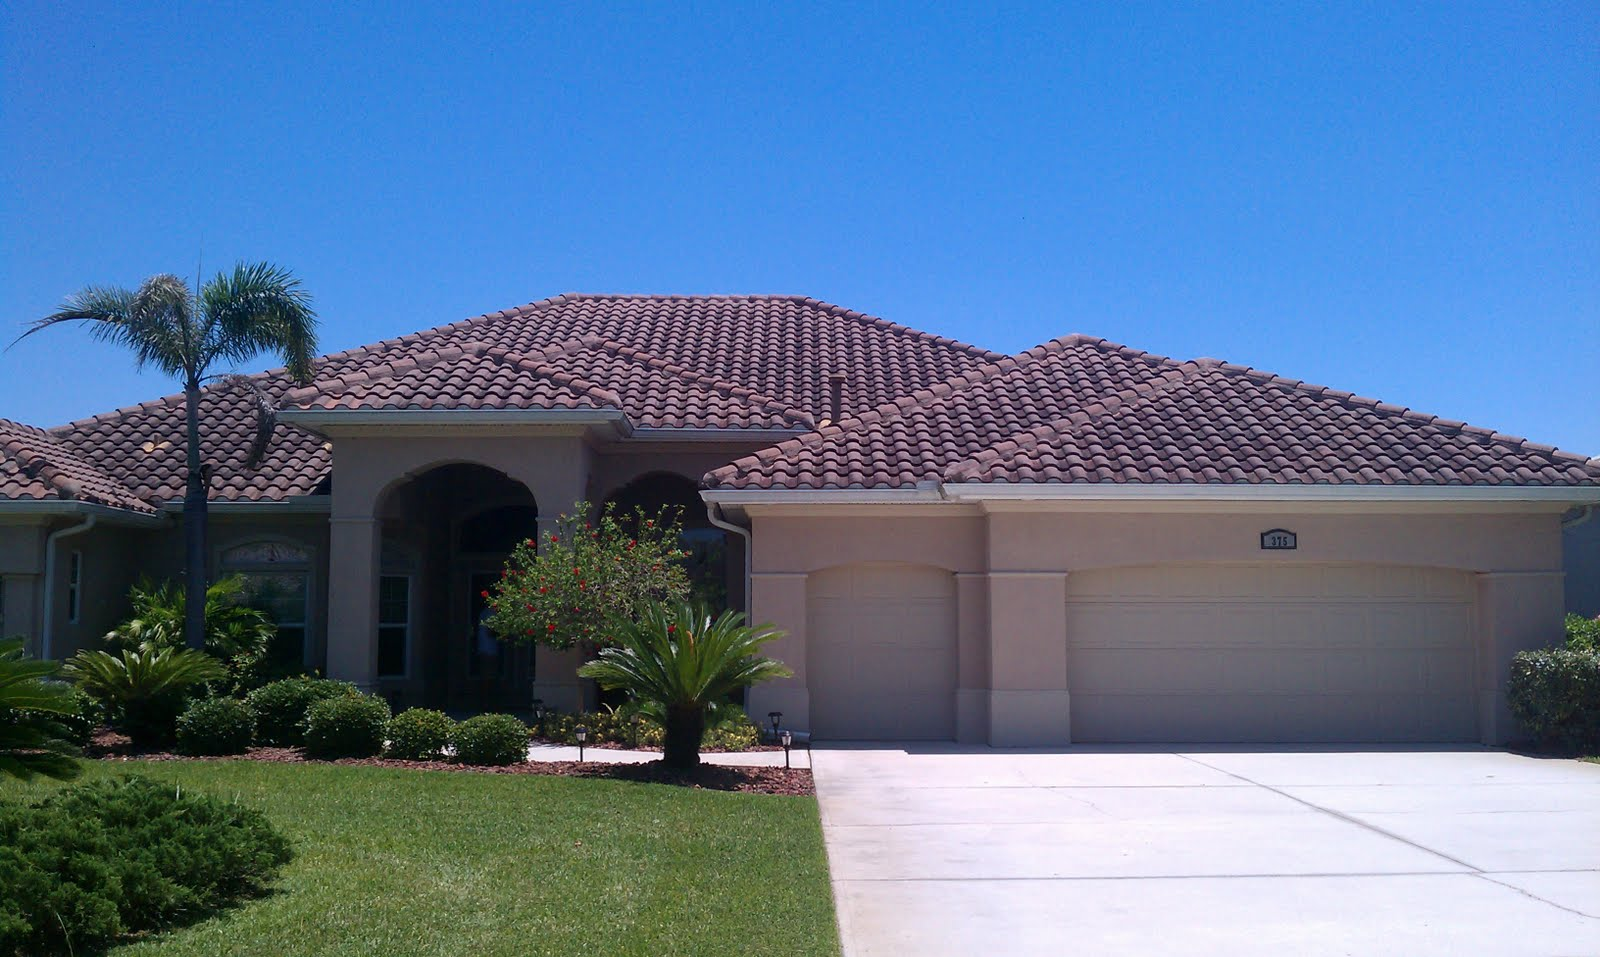 Beacon Roof Exterior Cleaning Tile Roof Cleaning